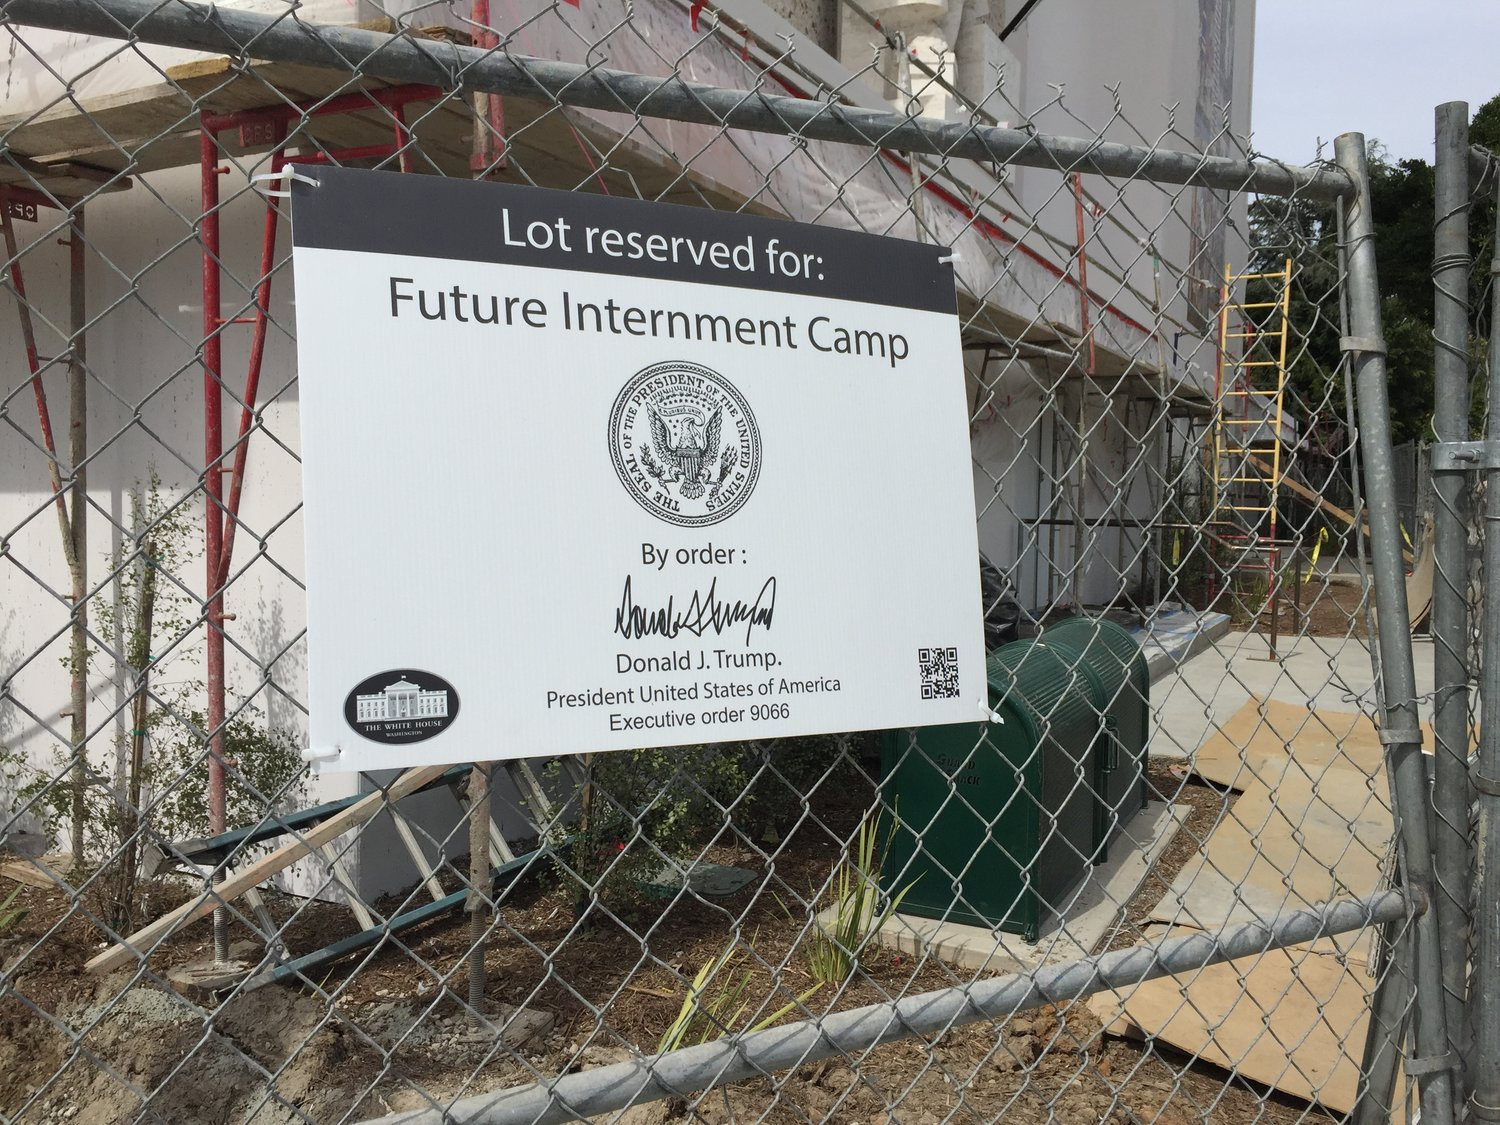 Construction site fence with a large official looking sign declaring the sight reserved as the location of a future internment camp.